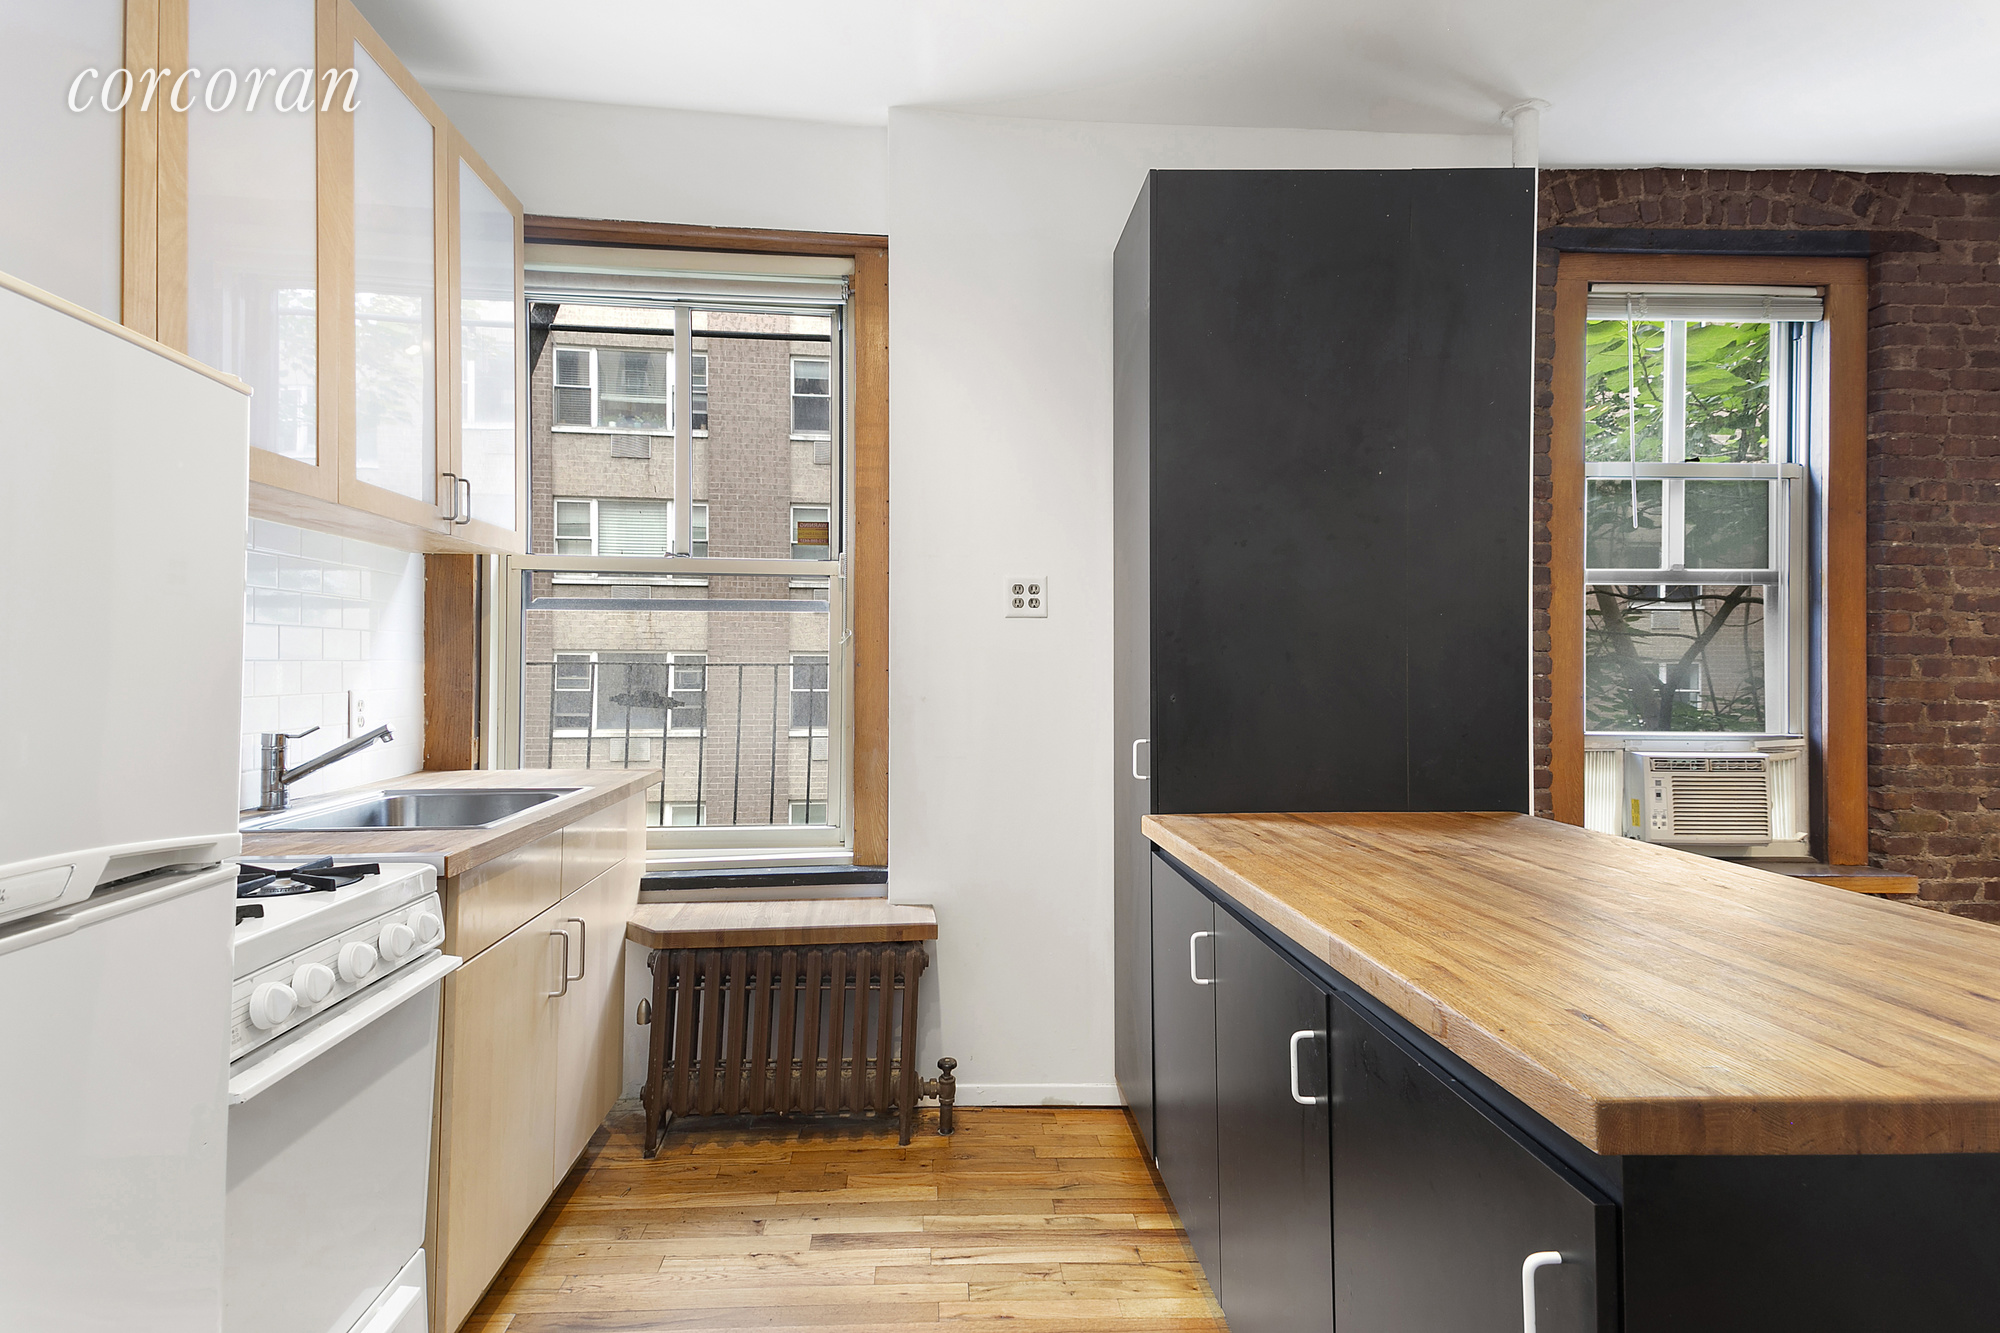 308 Mott #1C  has all the NOHO charm you've been looking for - exposed brick throughout, tons of light, high ceilings and a renovated kitchen. The apartment is located on the third floor of a walk-up building.